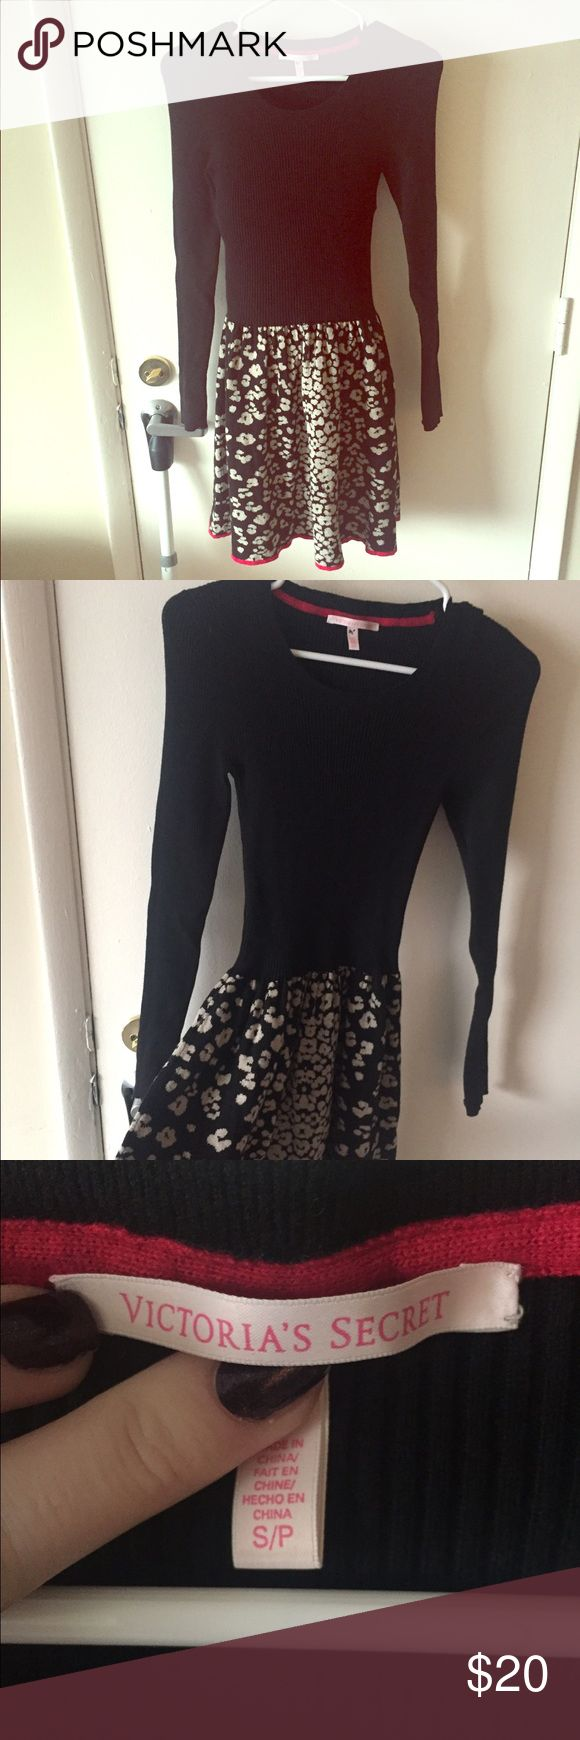 Victoria's Secret Black Whit Leopard Sweater Dress Size small. Perfect condition! Sweater dress. Nonsmoking home. From Victoria's Secret 😍😍 for a true angel! PINK Victoria's Secret Dresses